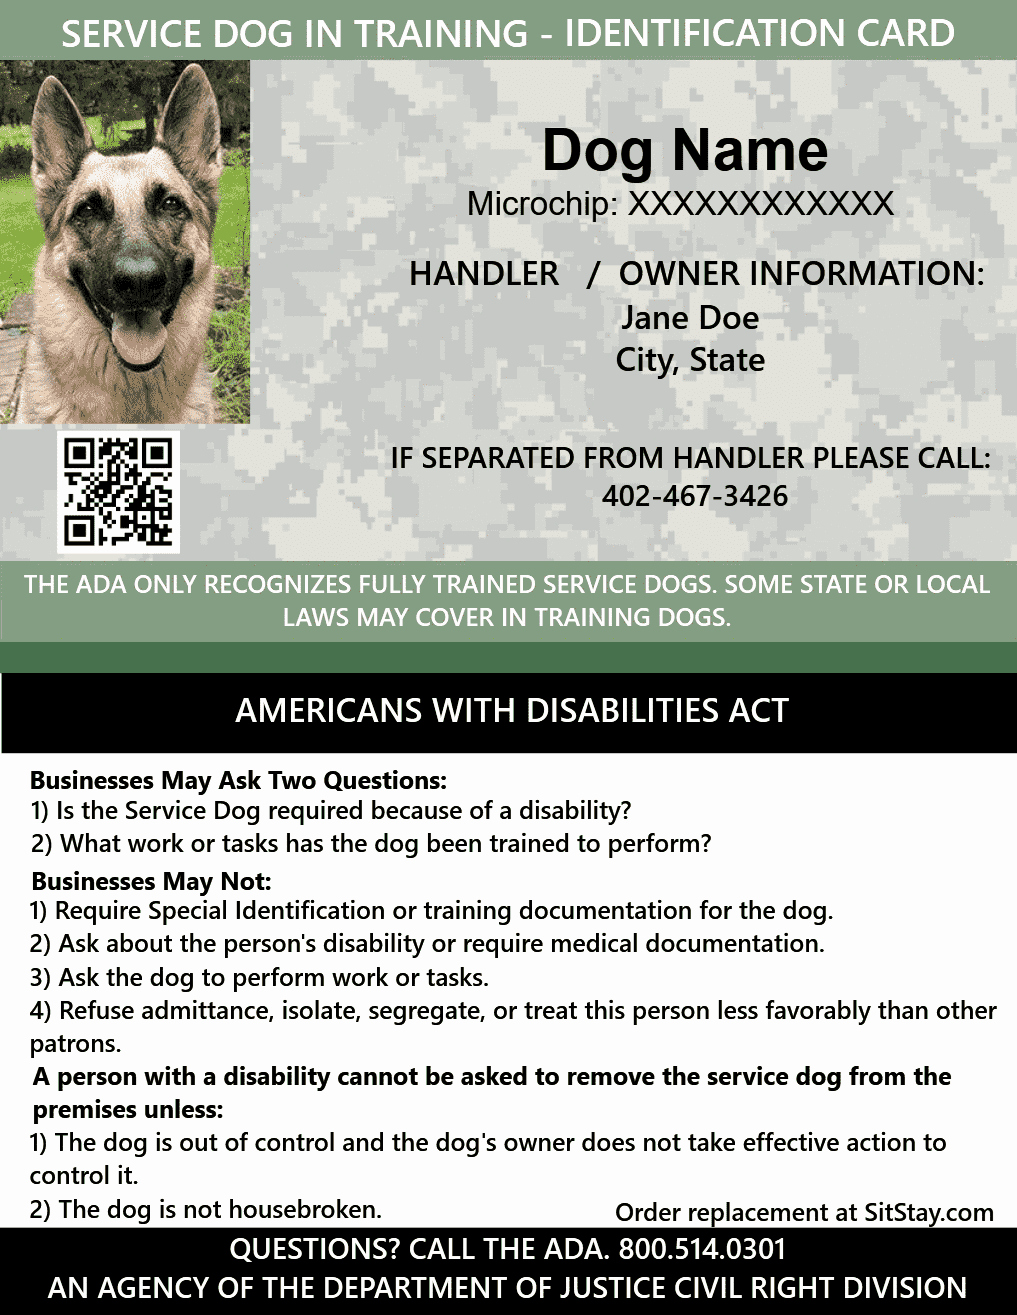 Service Dog Id Card Template Free Download Awesome Id Card Service Dog In Training